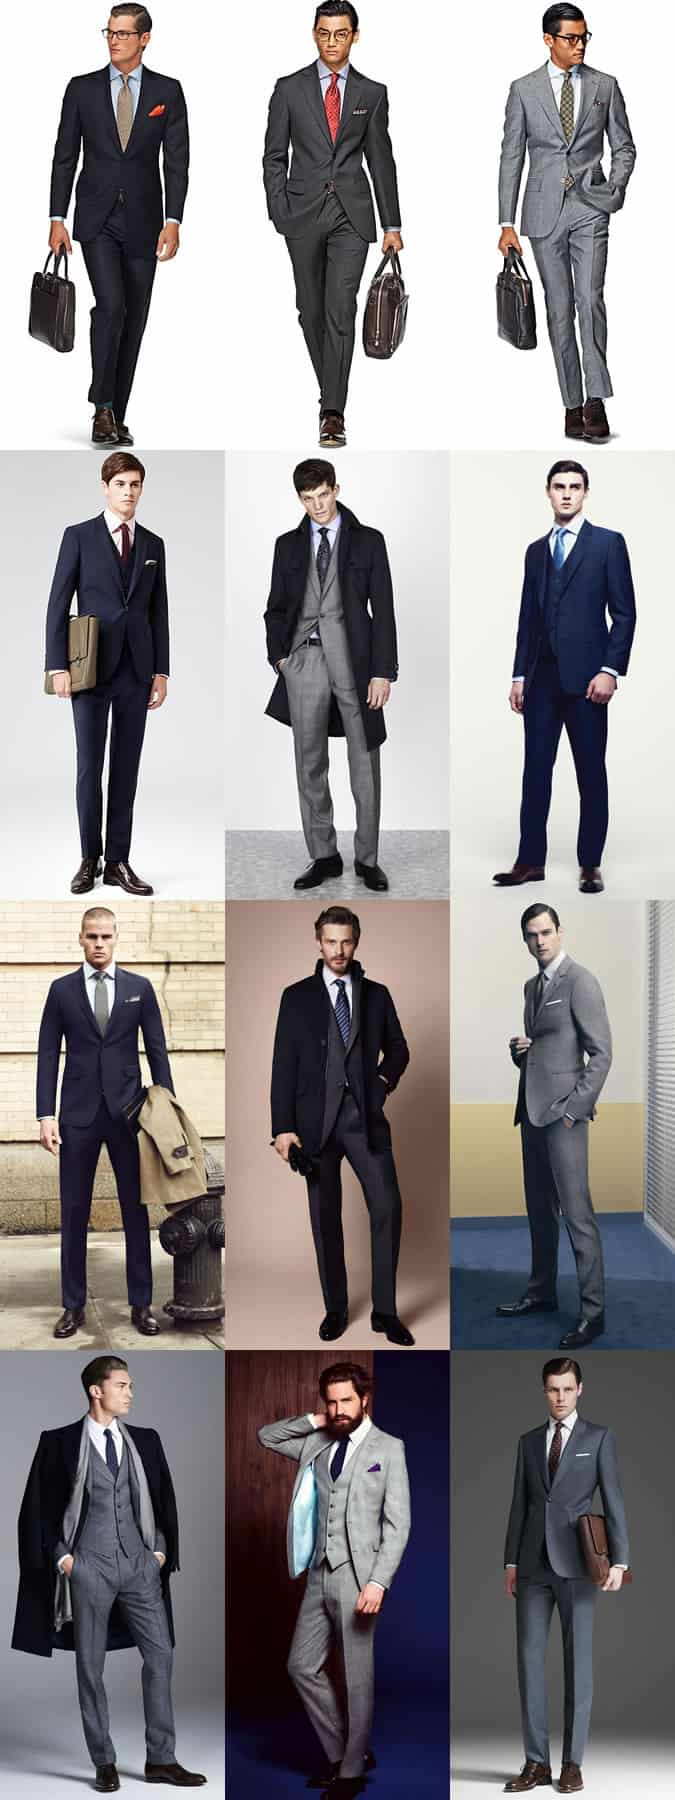 Dressing For The Occasion: Modern Office Attire – Part Two